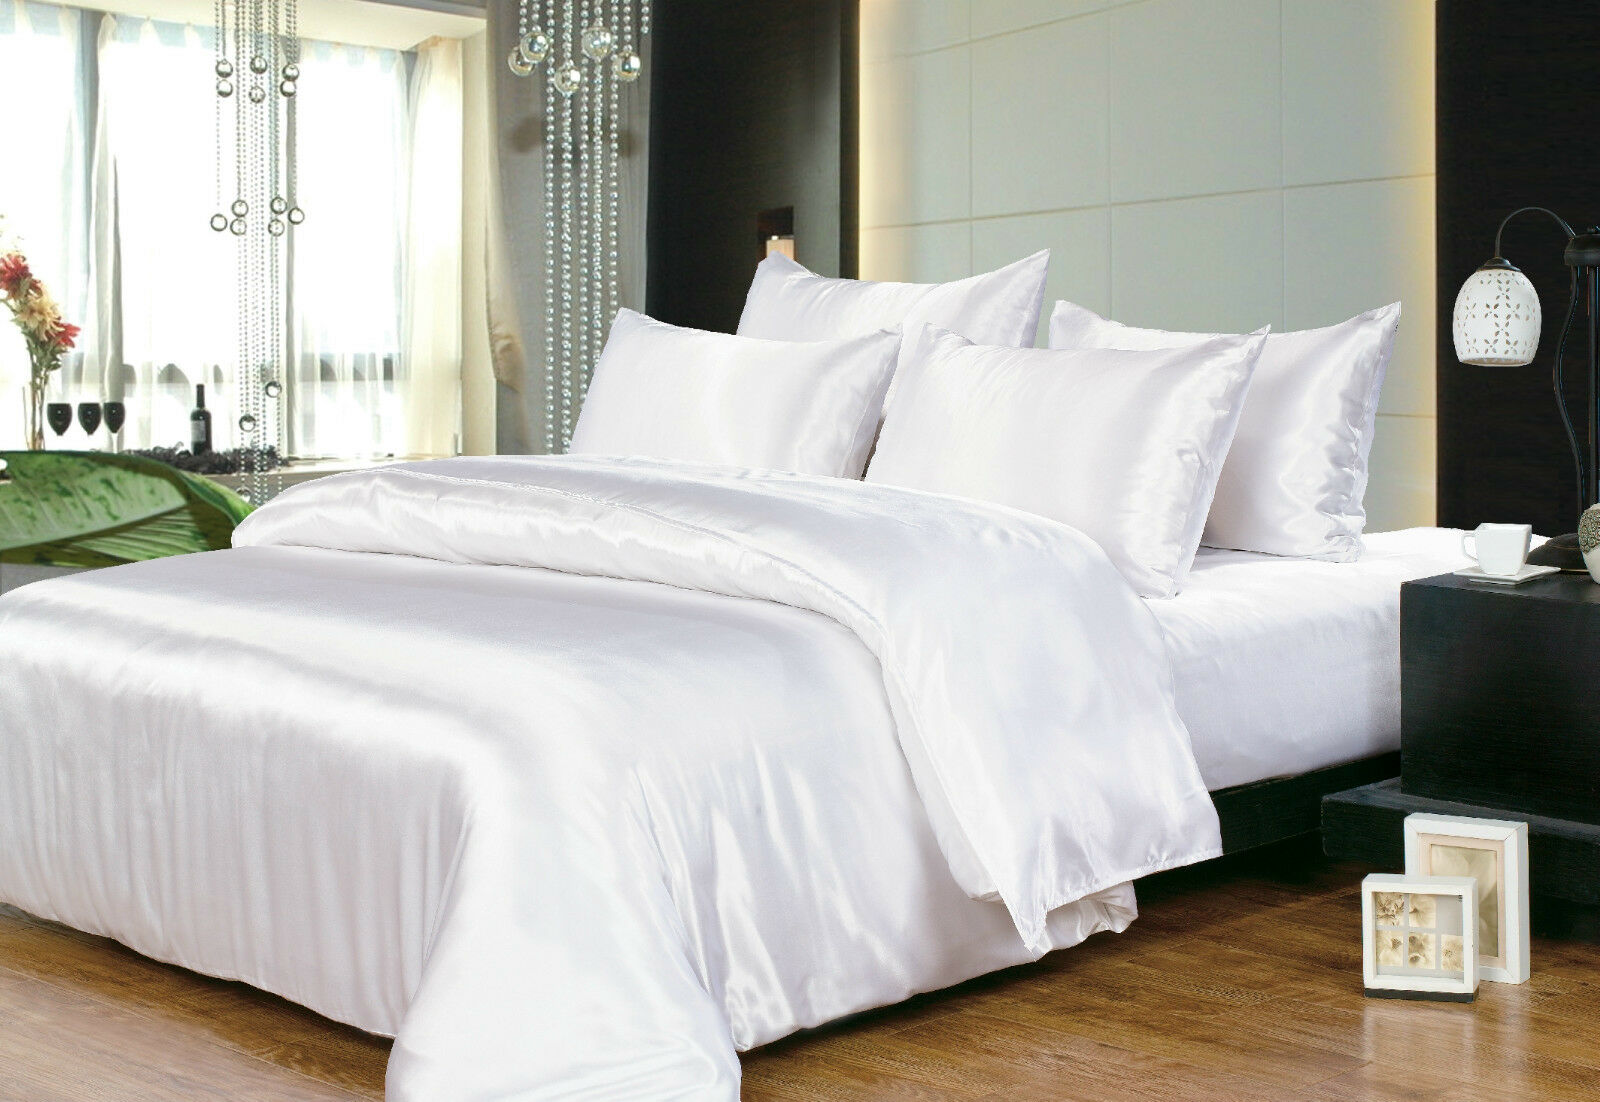 Hotel Quality Silk/Satin King Size Bed Sheet Set  White COLOUR NEW